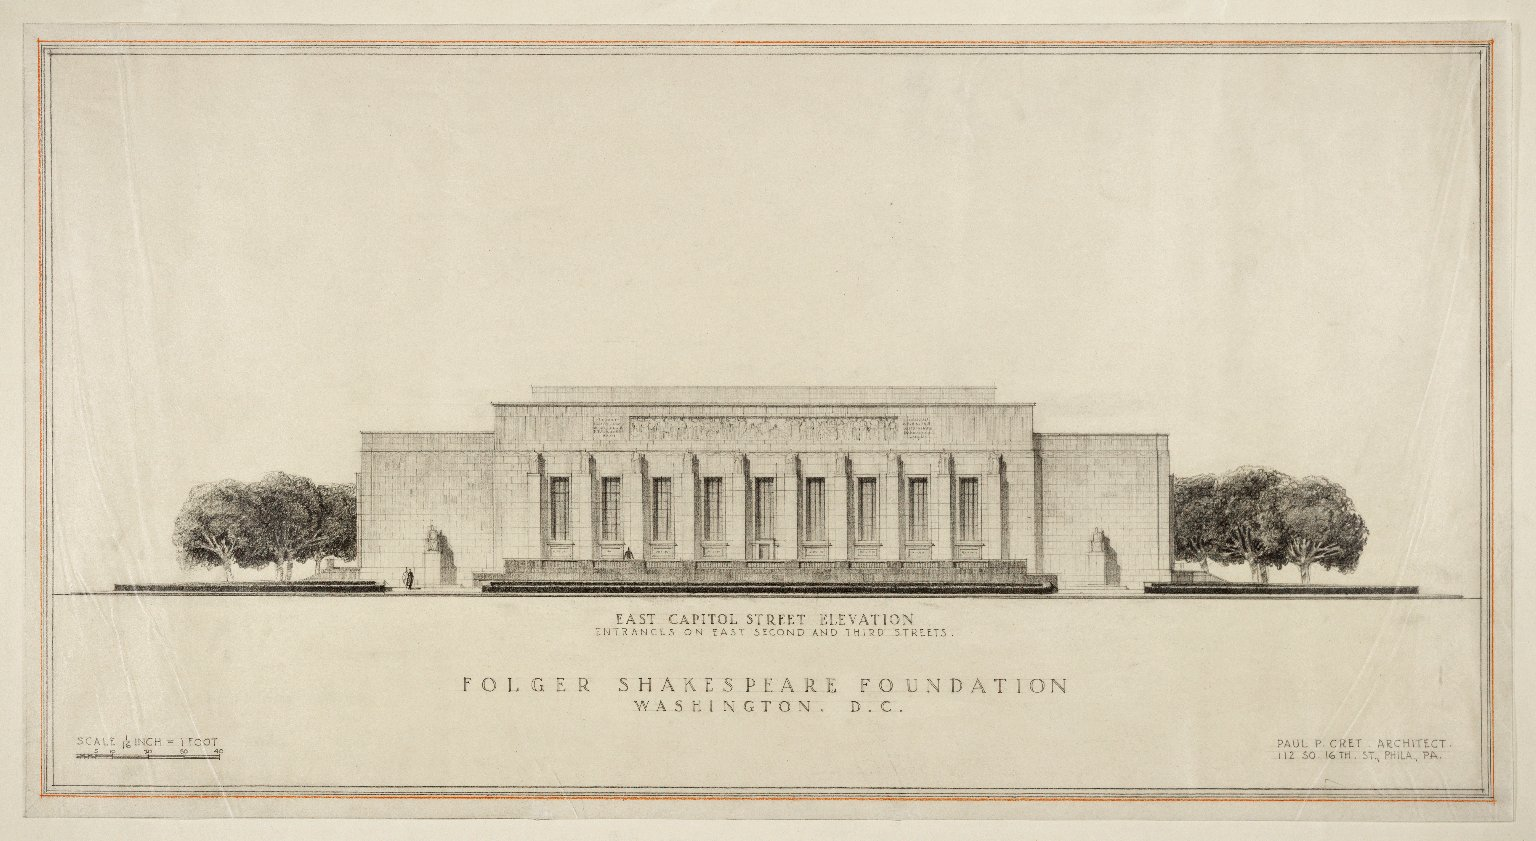 East Capitol Street elevation, lower wings